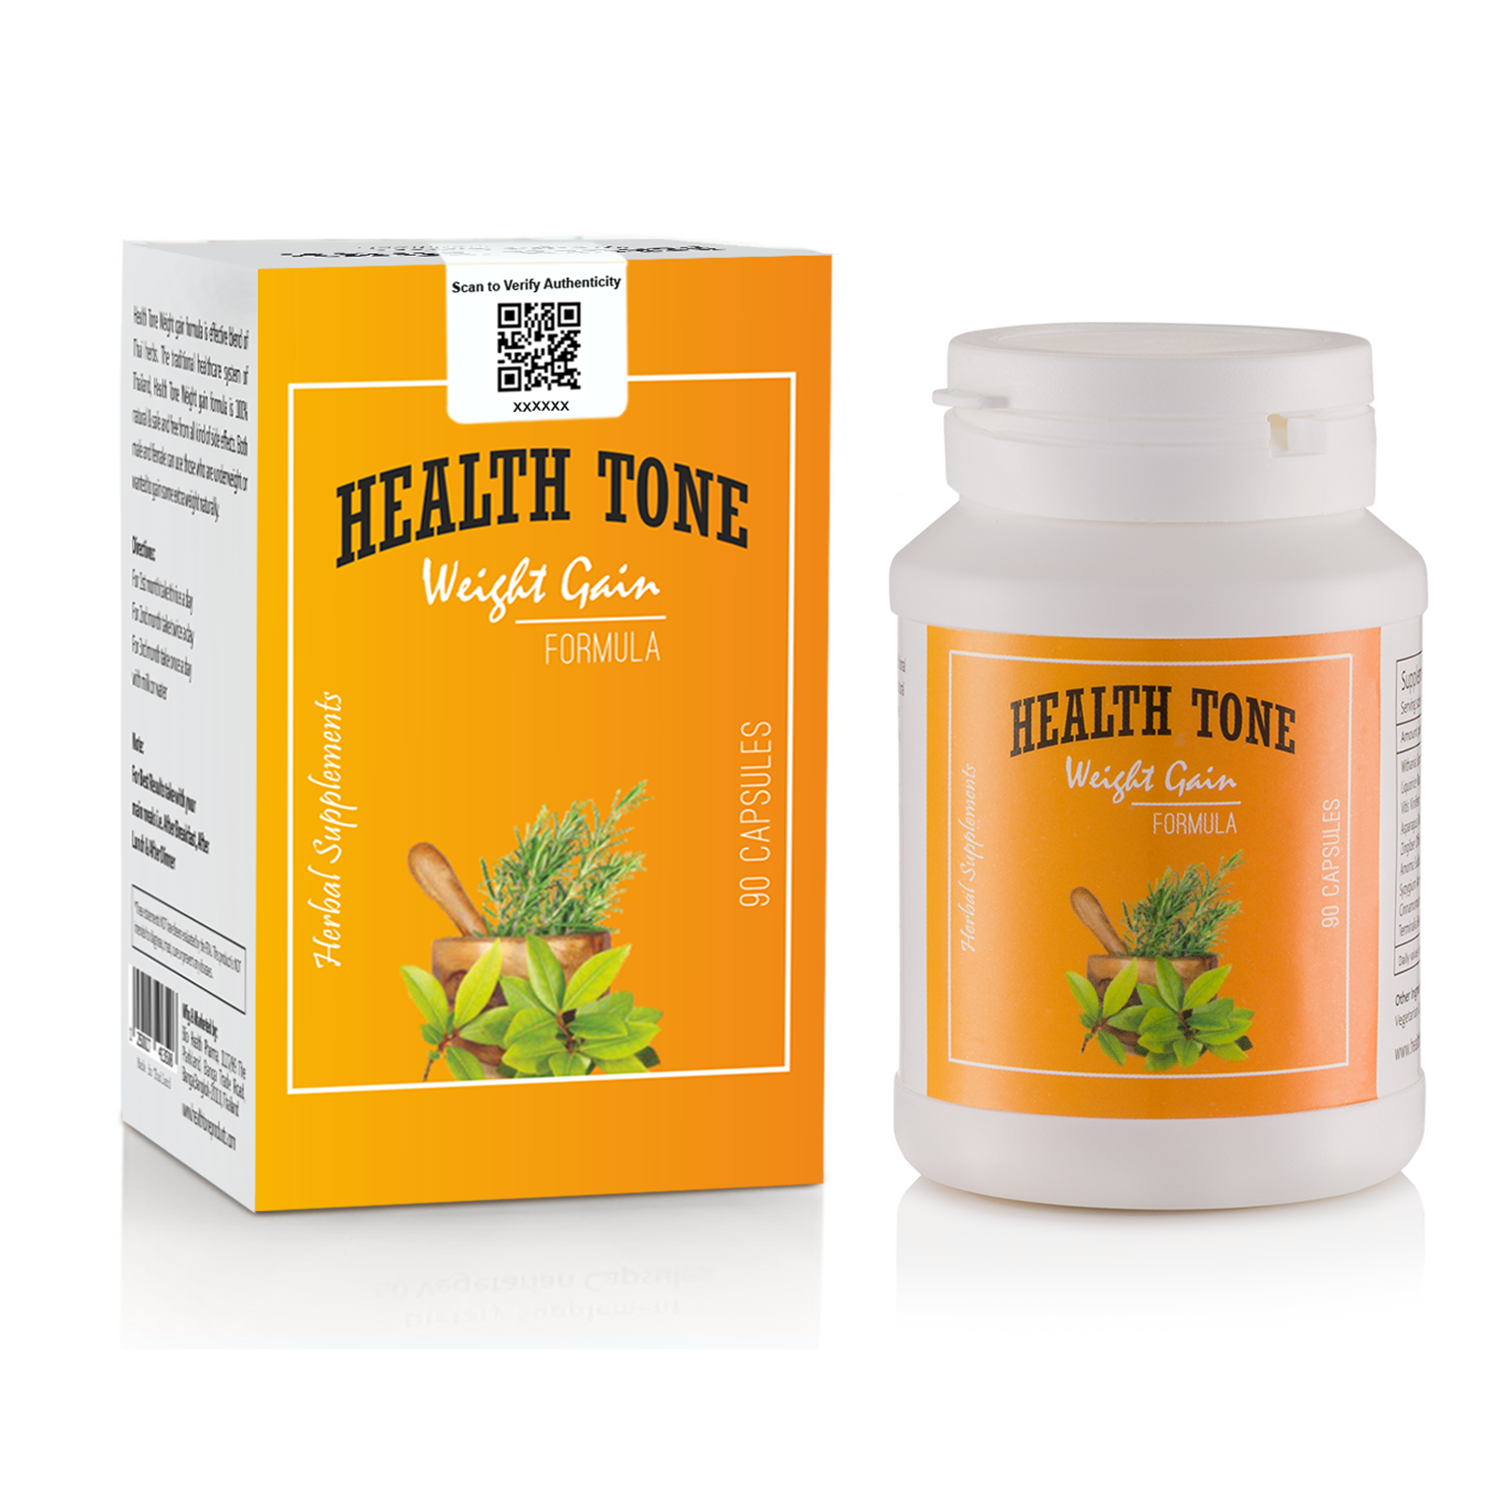 Health Tone Weight Gain Capsule